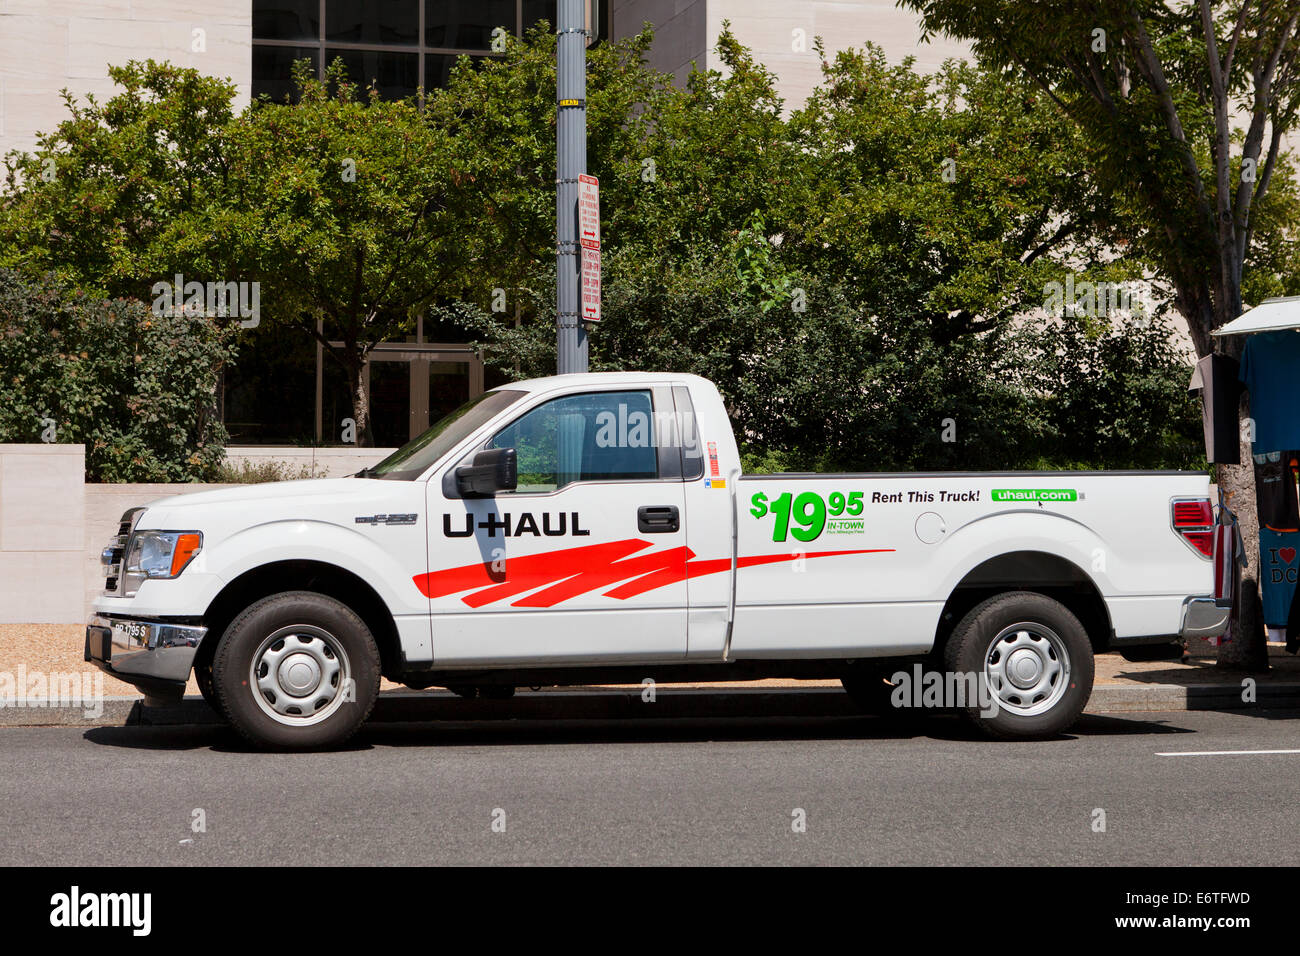 U-Haul rental pickup truck - USA - Stock Image